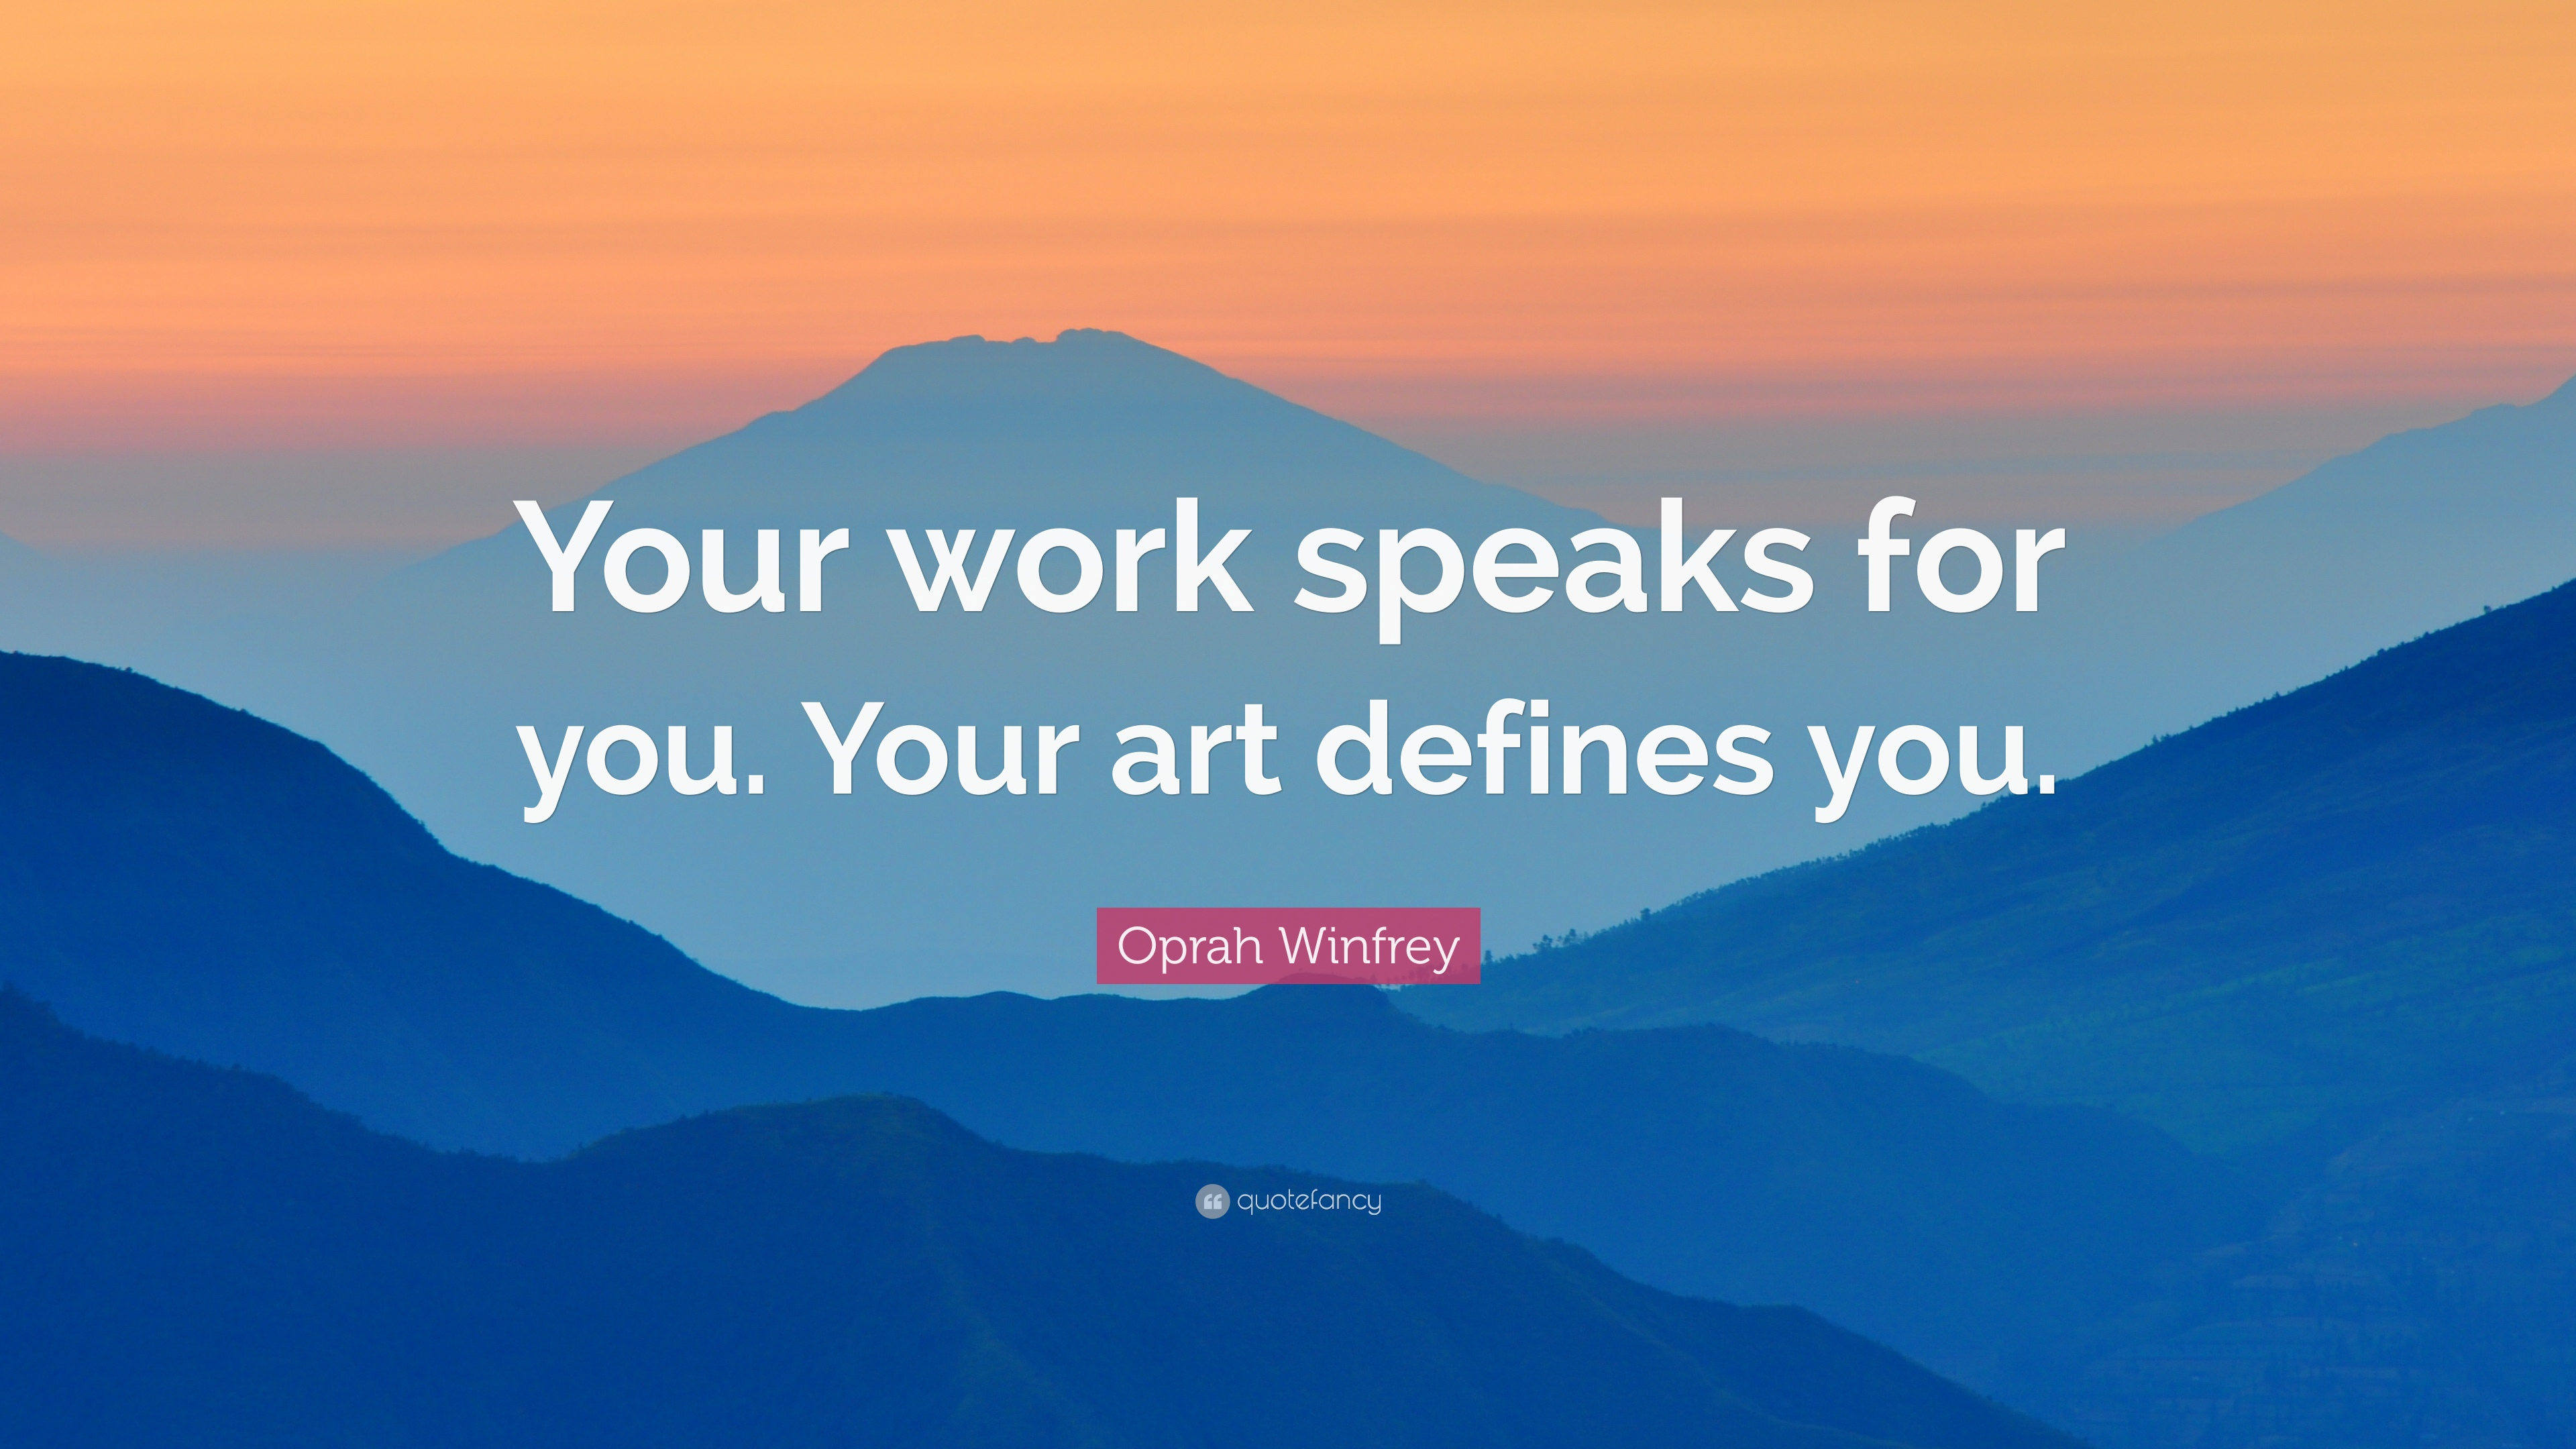 """Oprah Winfrey Quote: """"Your work speaks for you. Your art defines you."""" (7  wallpapers) - Quotefancy"""